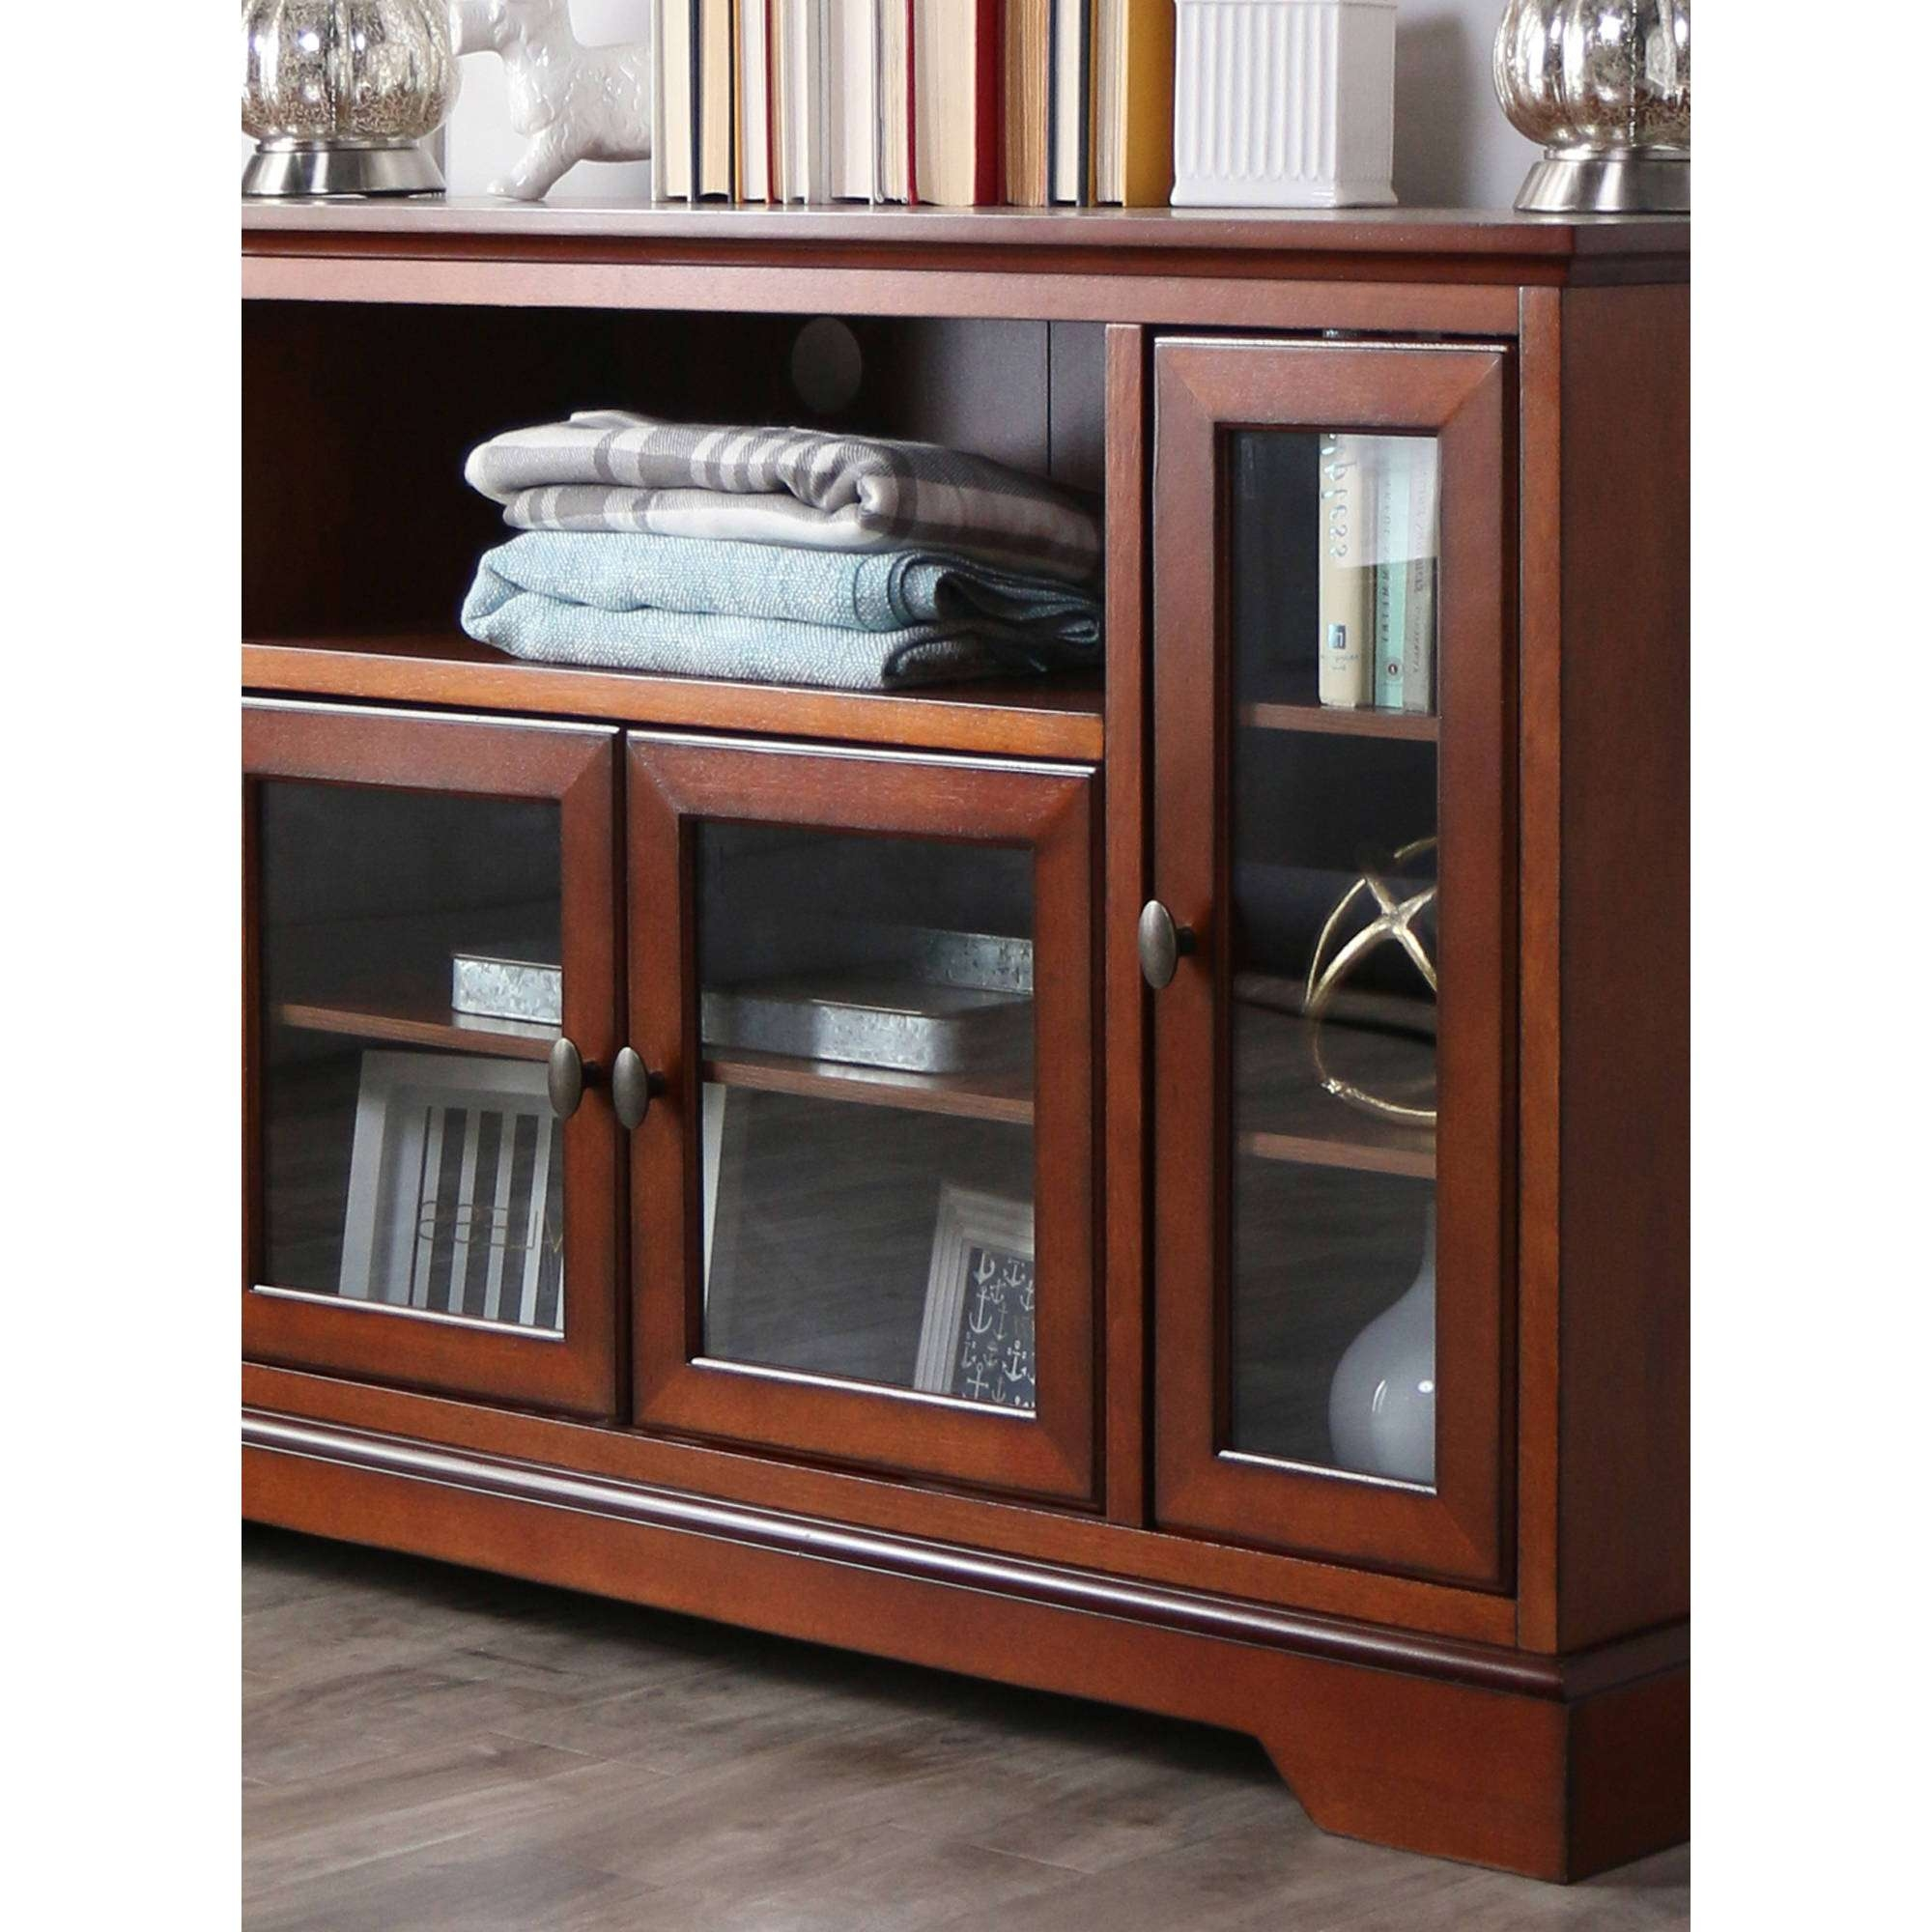 Tv : Bu Amazing Tv Stands For Tube Tvs Amazon Com Bay Shore Throughout Tv Stands For Tube Tvs (View 4 of 15)